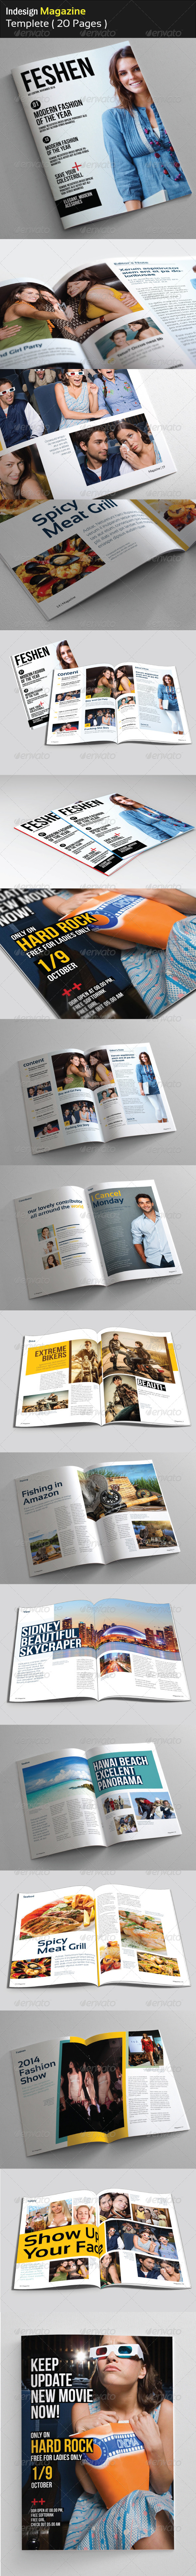 GraphicRiver Feshen Magazine Template 4701340